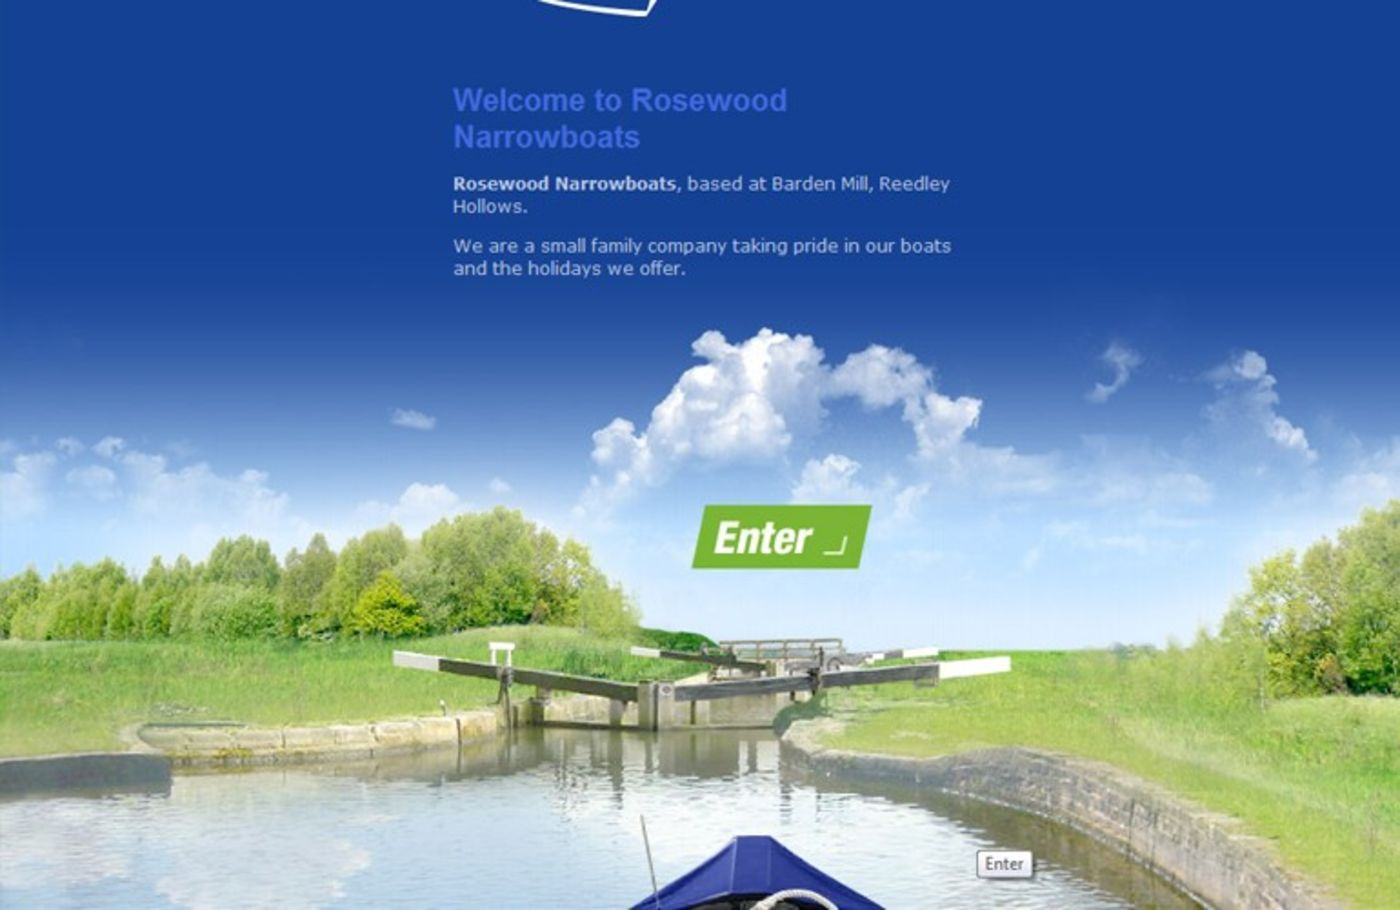 Rosewood Narrowboats Welcome